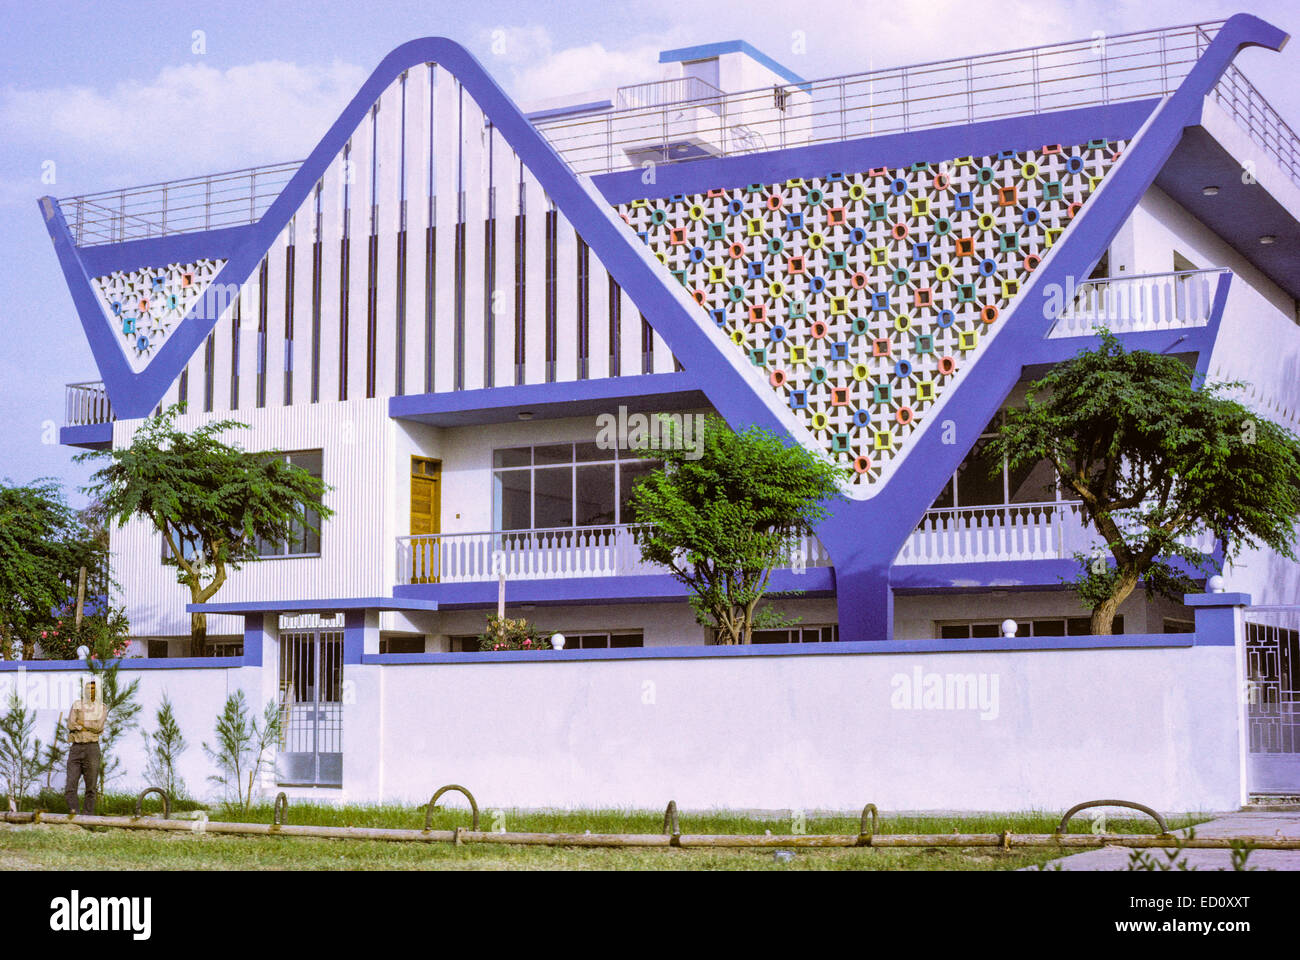 Kuwait march 1968 modern architecture popular in the for Architecture 1960